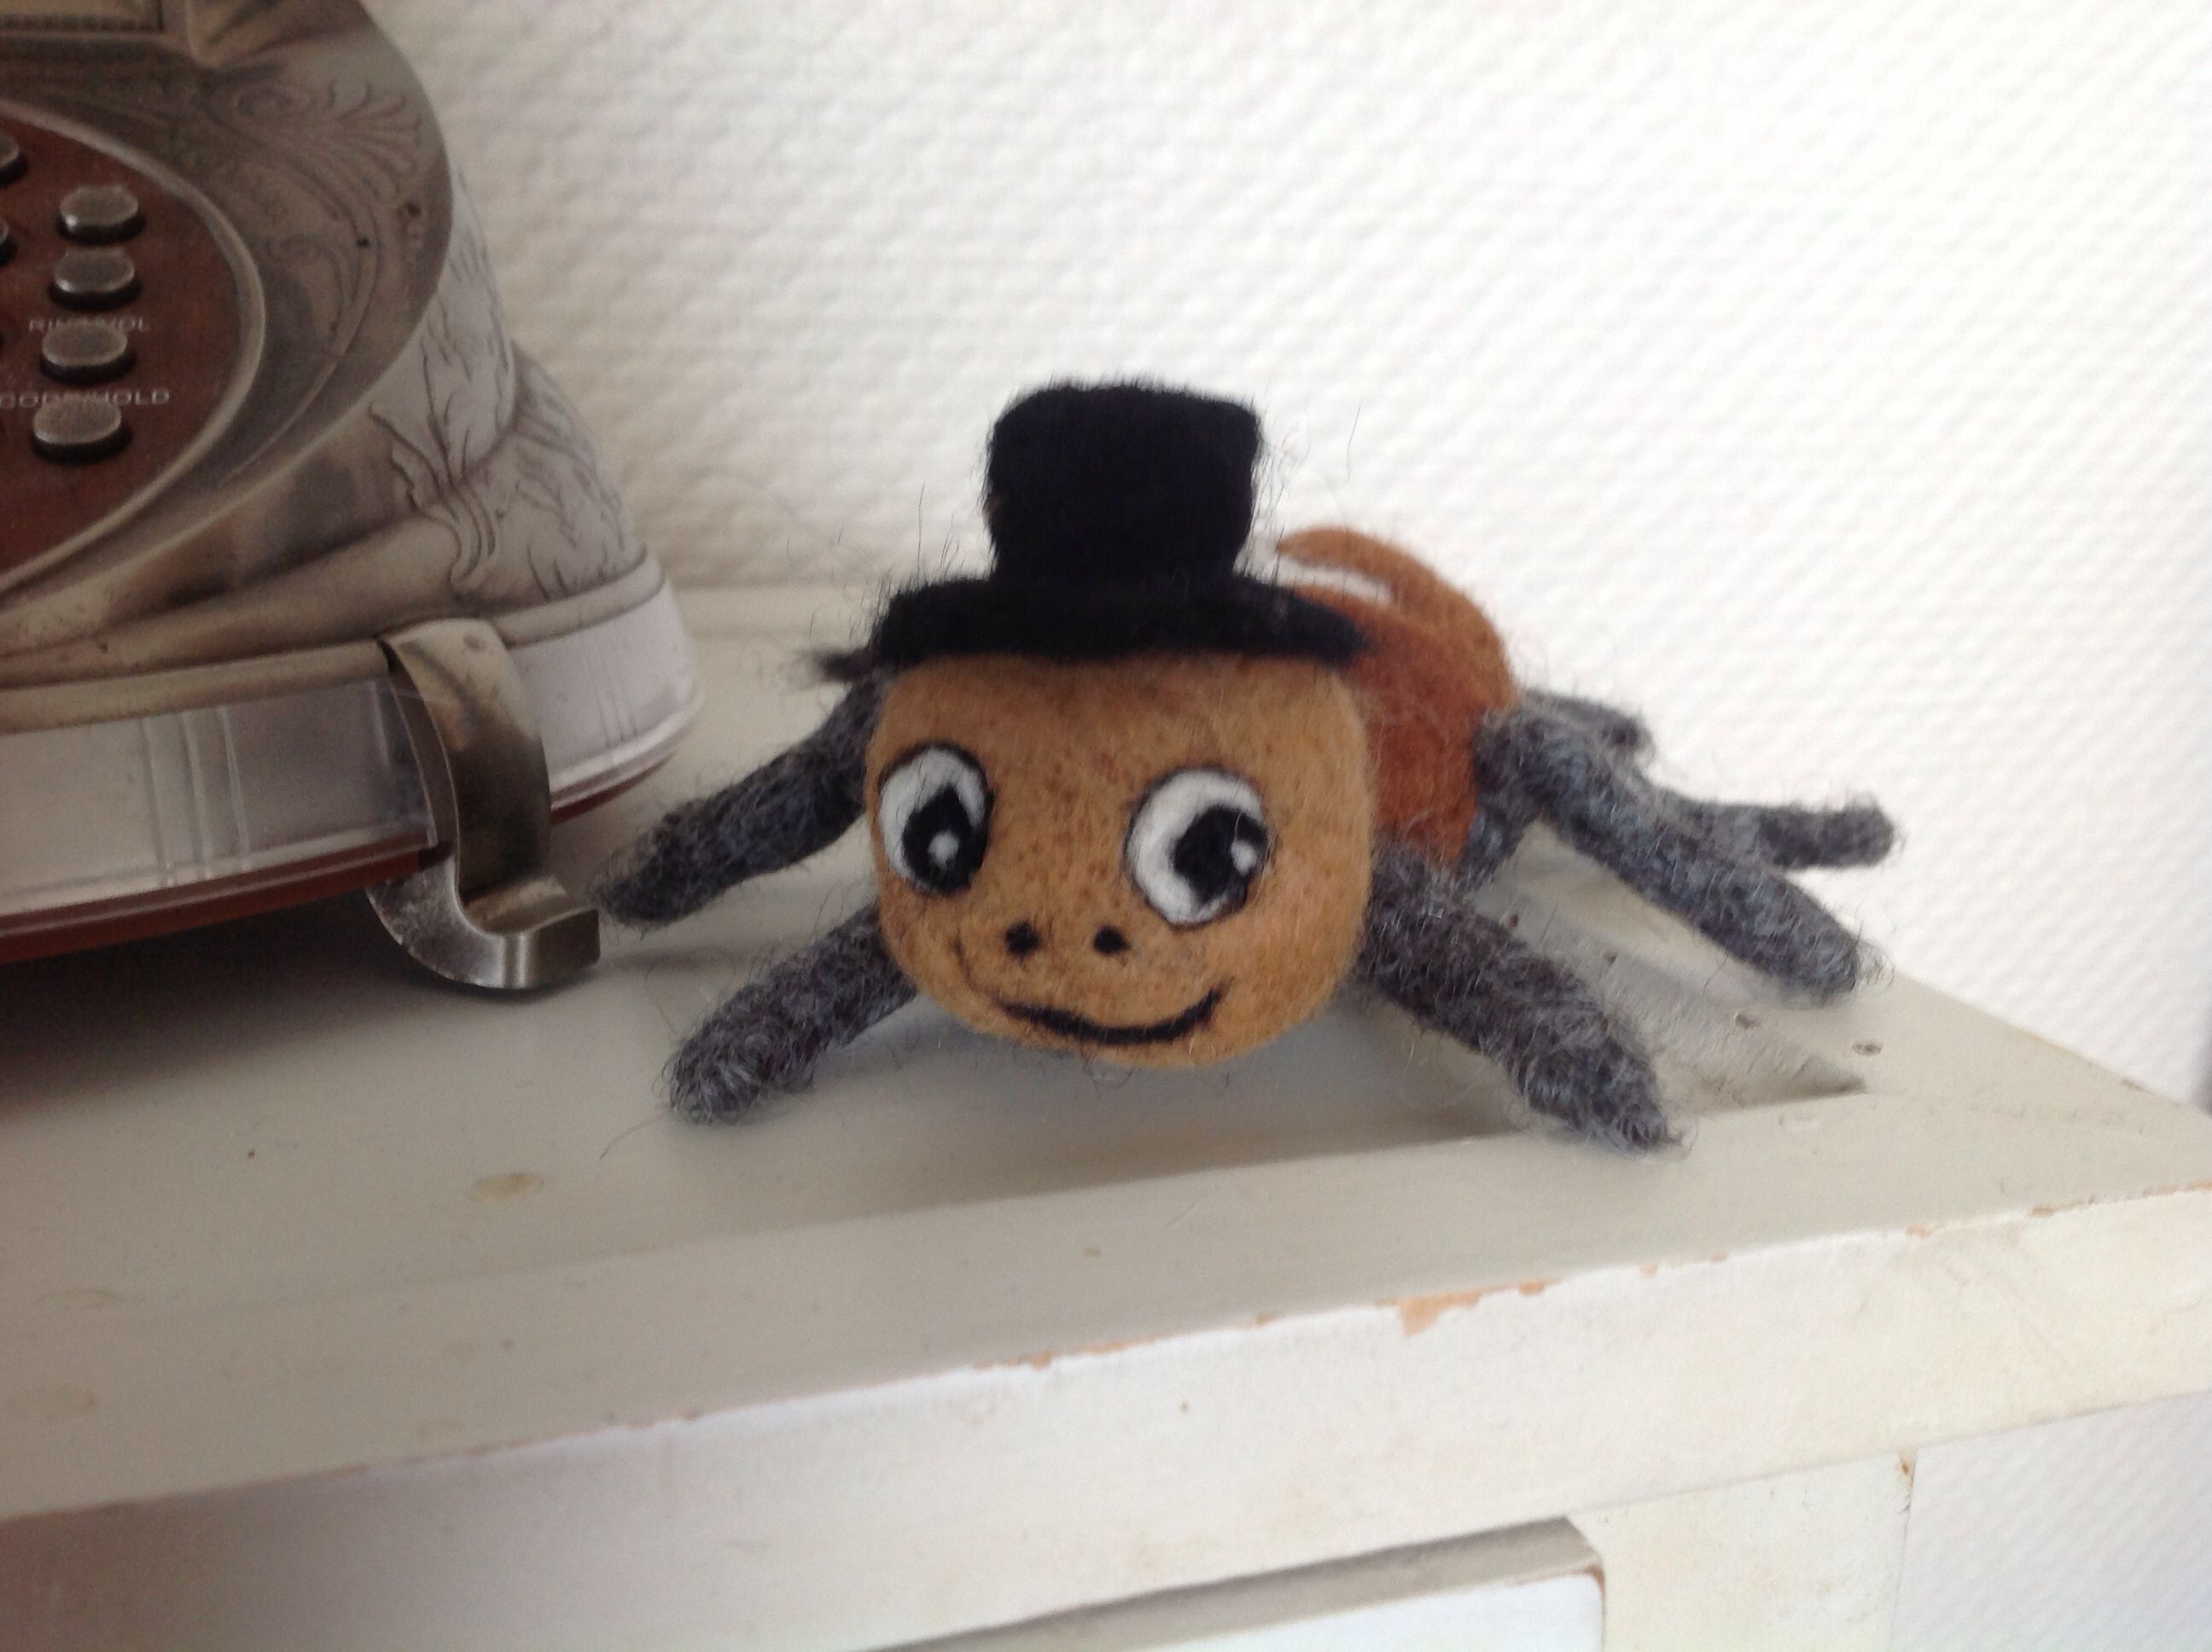 Peter Spiderman is from a Danish children song. They Can play and sing with this felted spiderman.